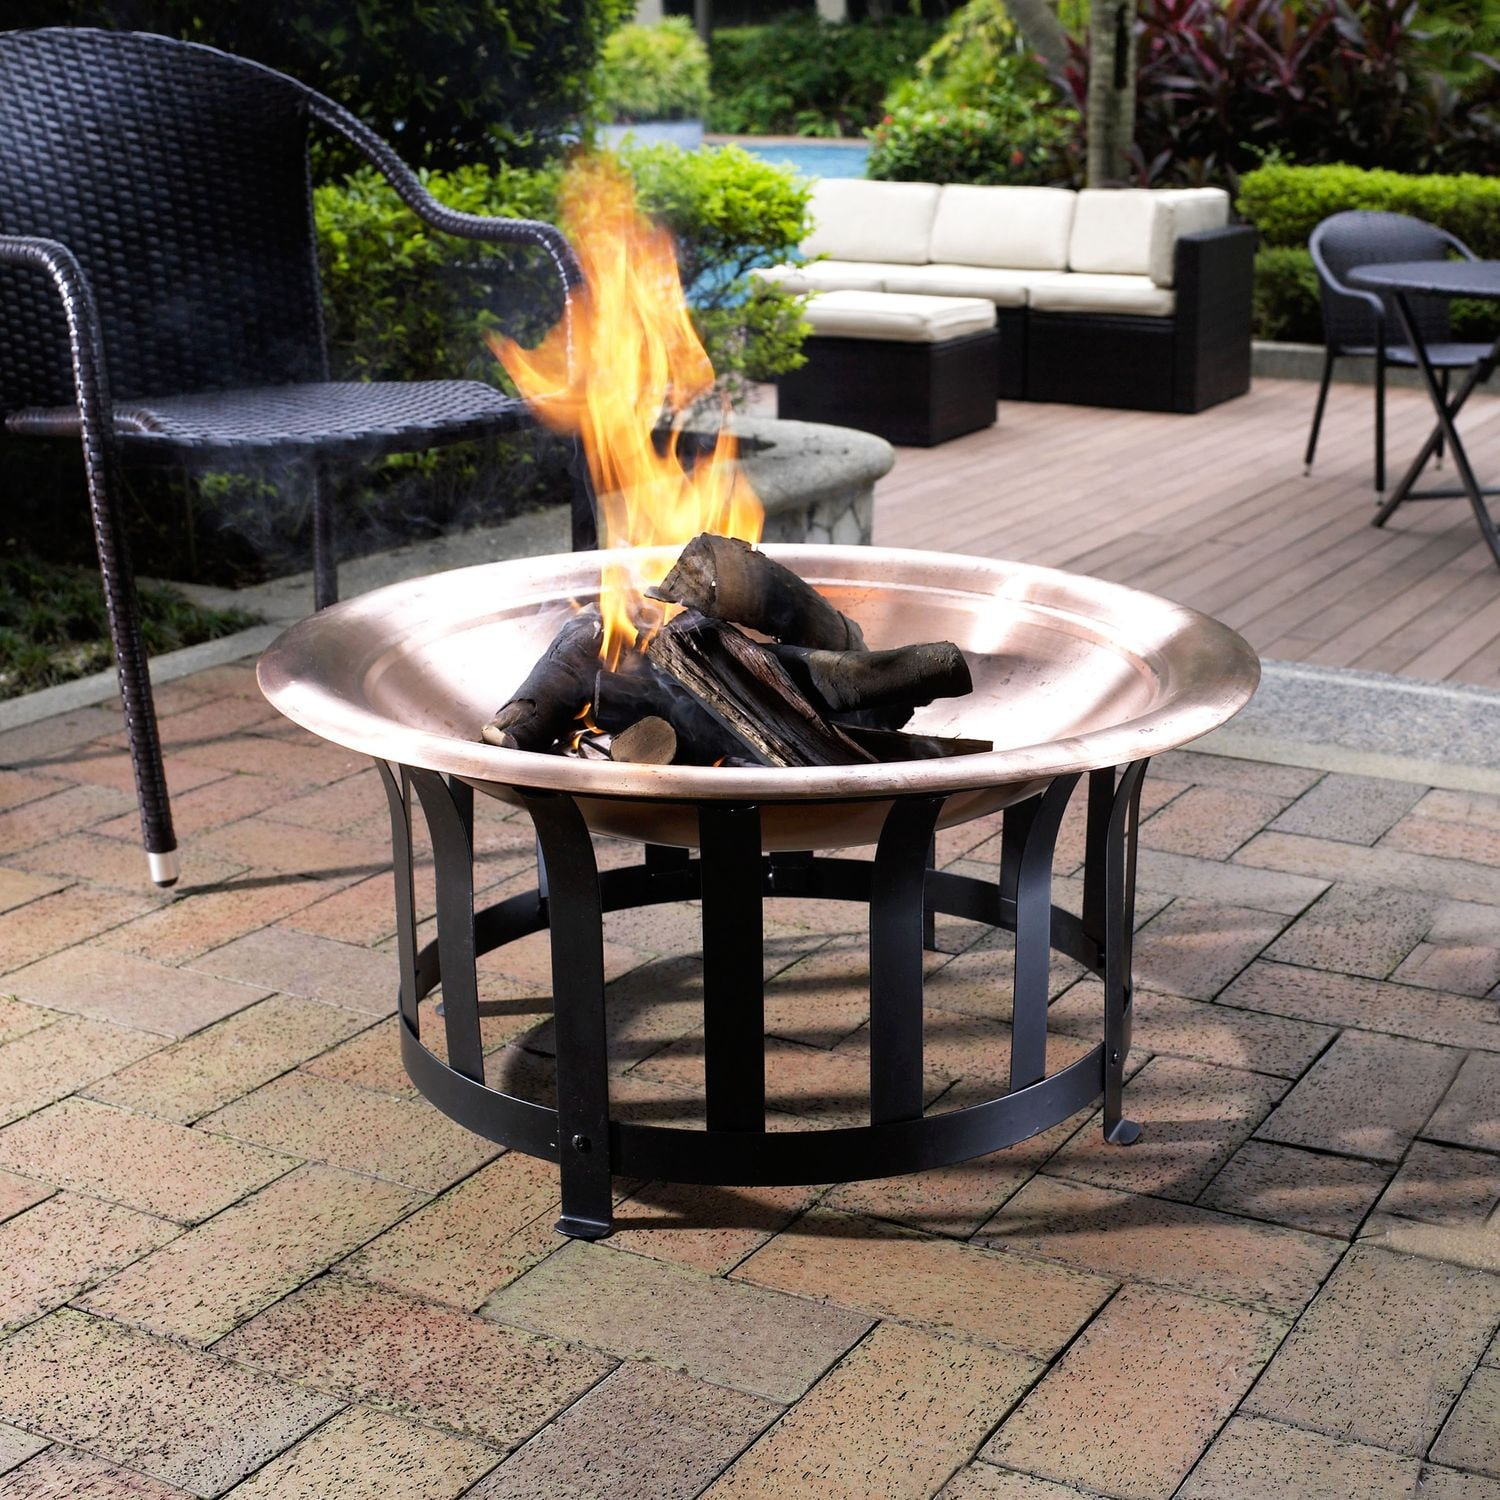 Outdoor Furniture - Dexter Fire Pit - Copper